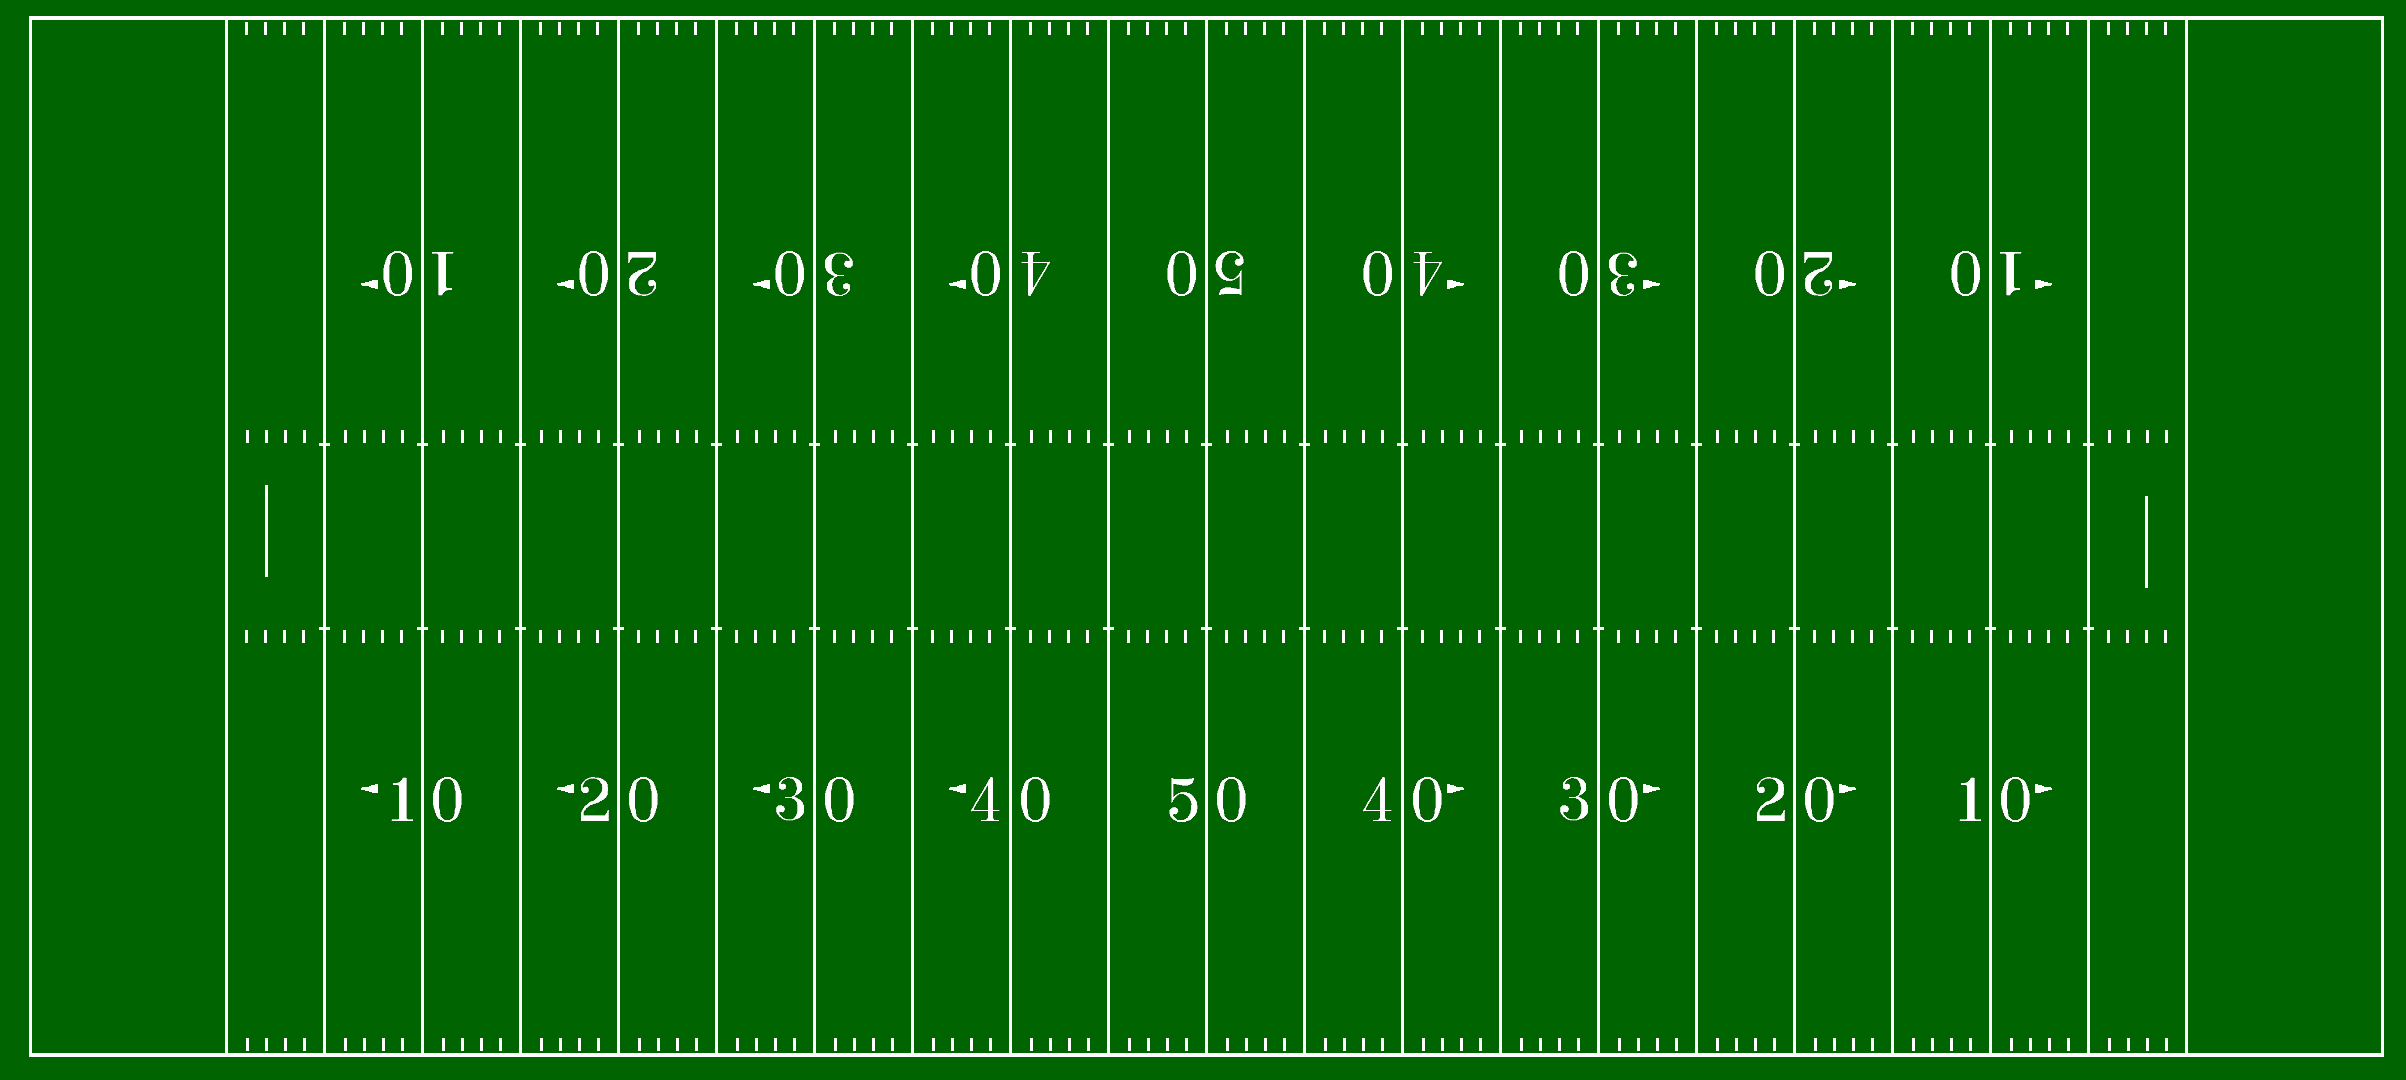 Divine image with printable football field